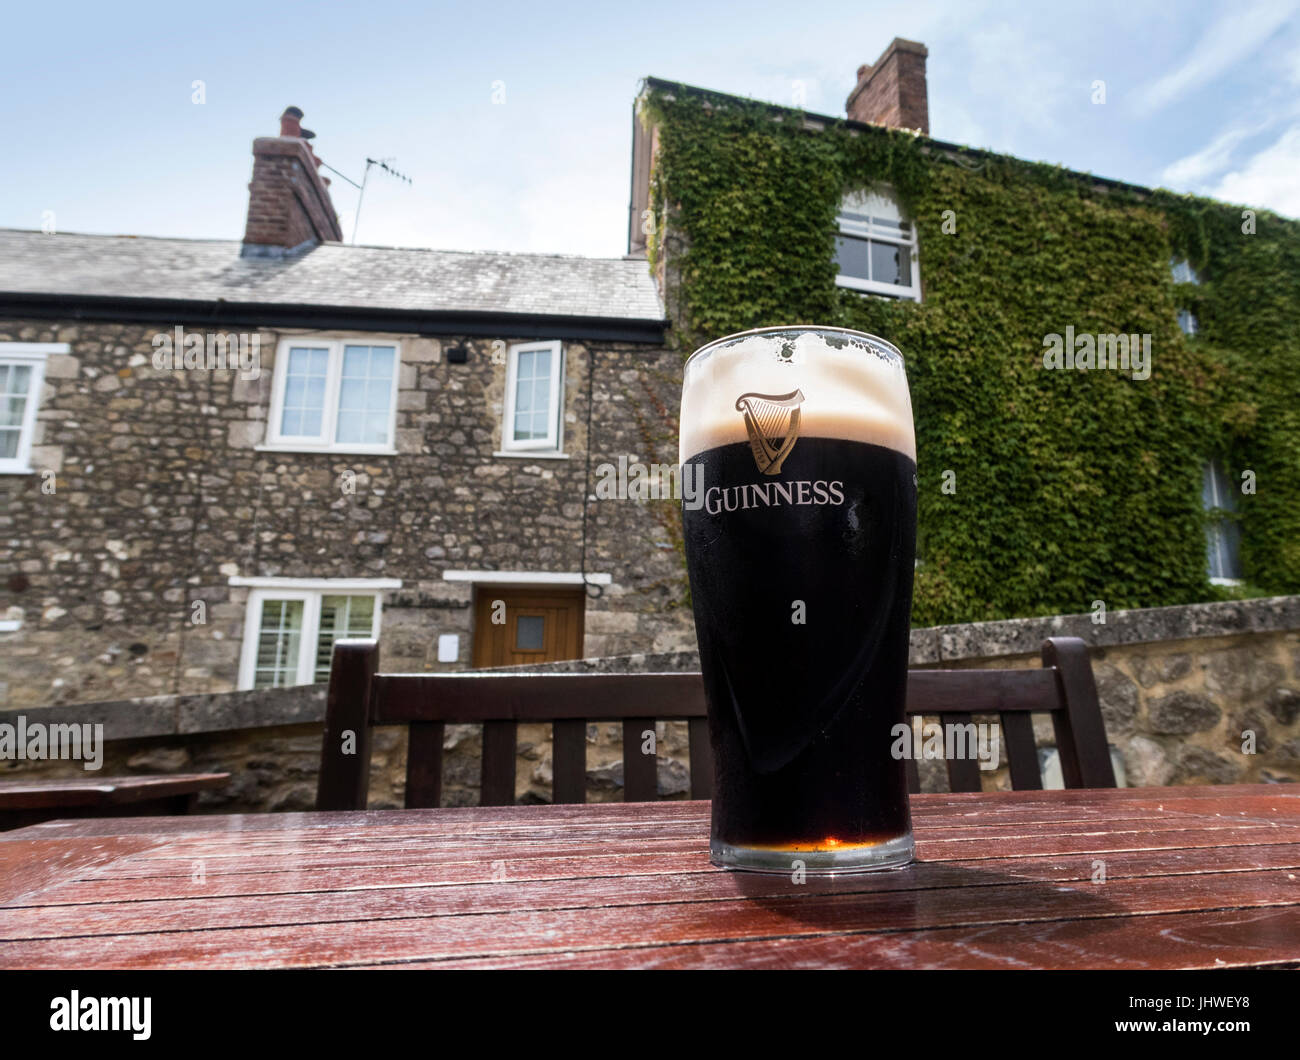 a-pint-of-guiness-on-a-table-outside-a-c